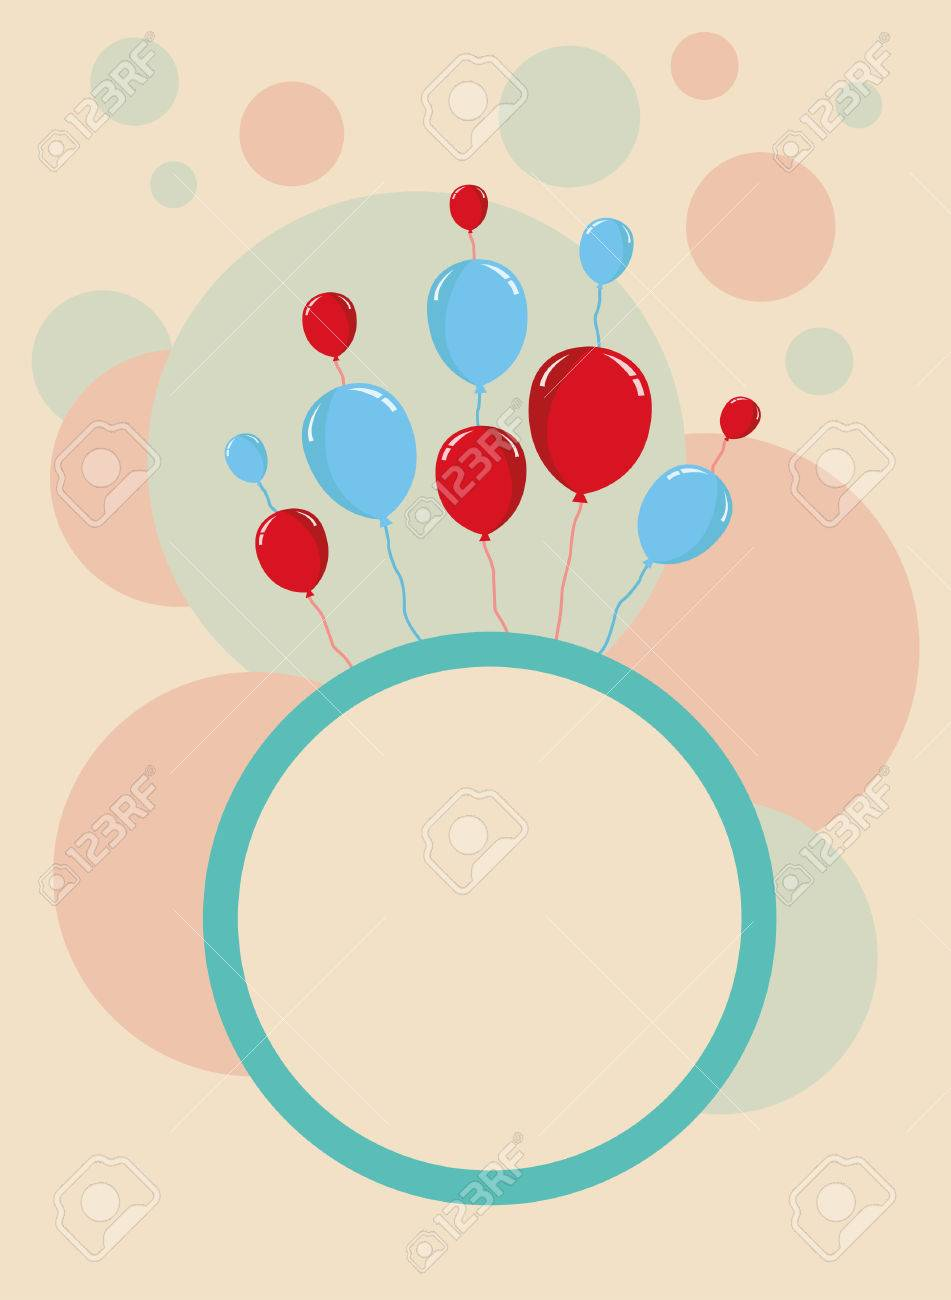 Happy Birthday Card Design Template With Circular Pattern Stock